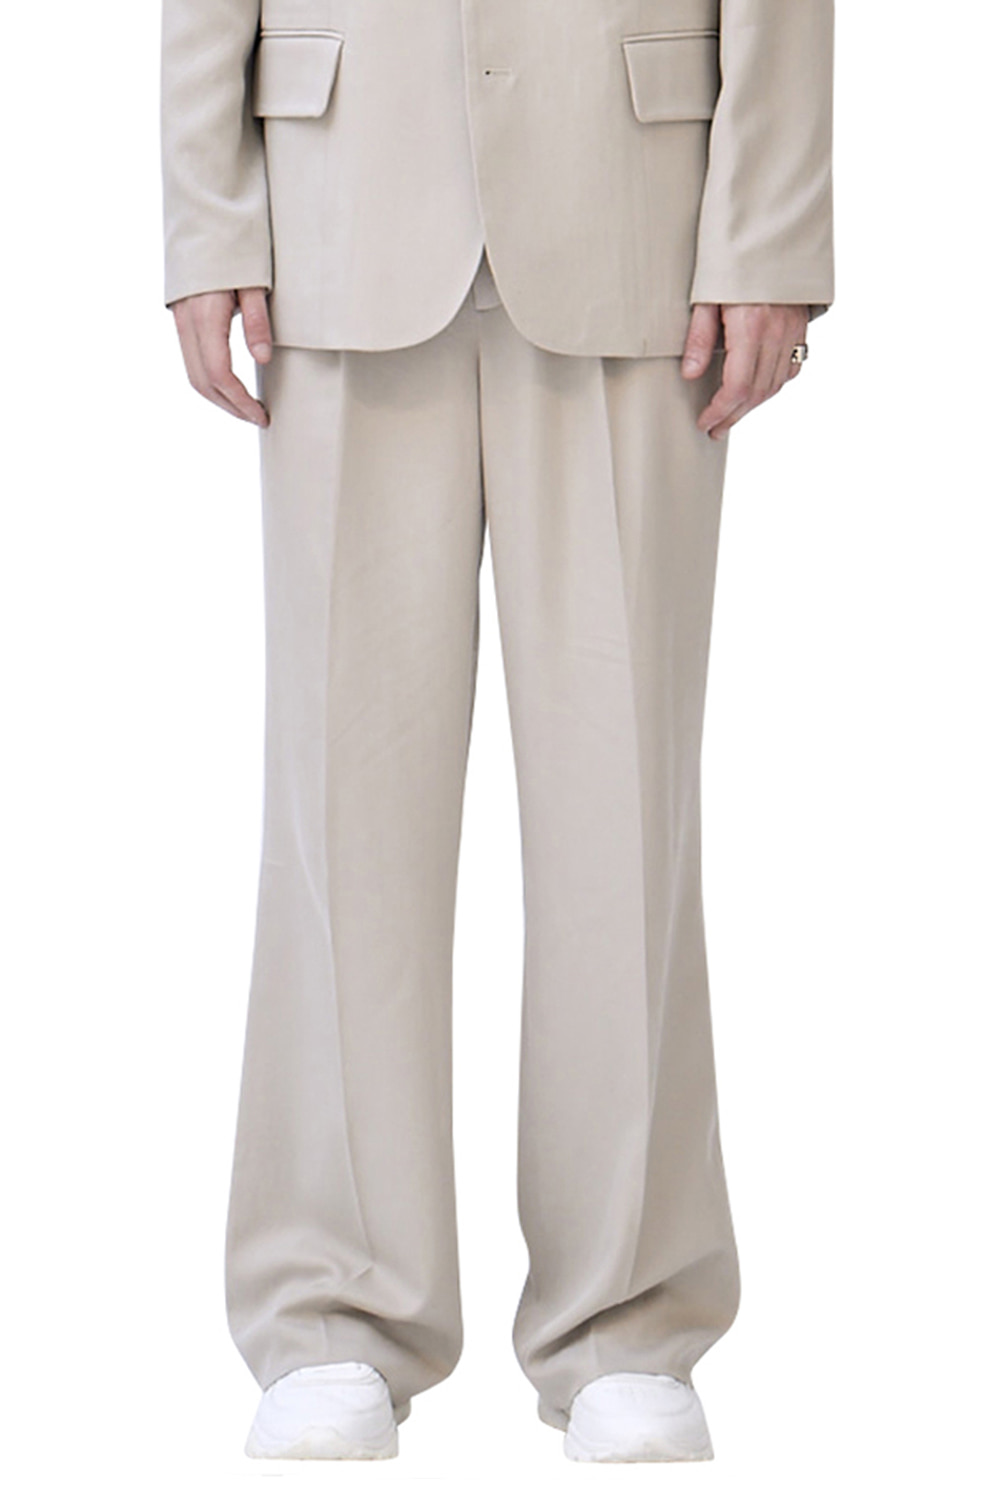 UNISEX IVORY WIDE LEG TROUSERS